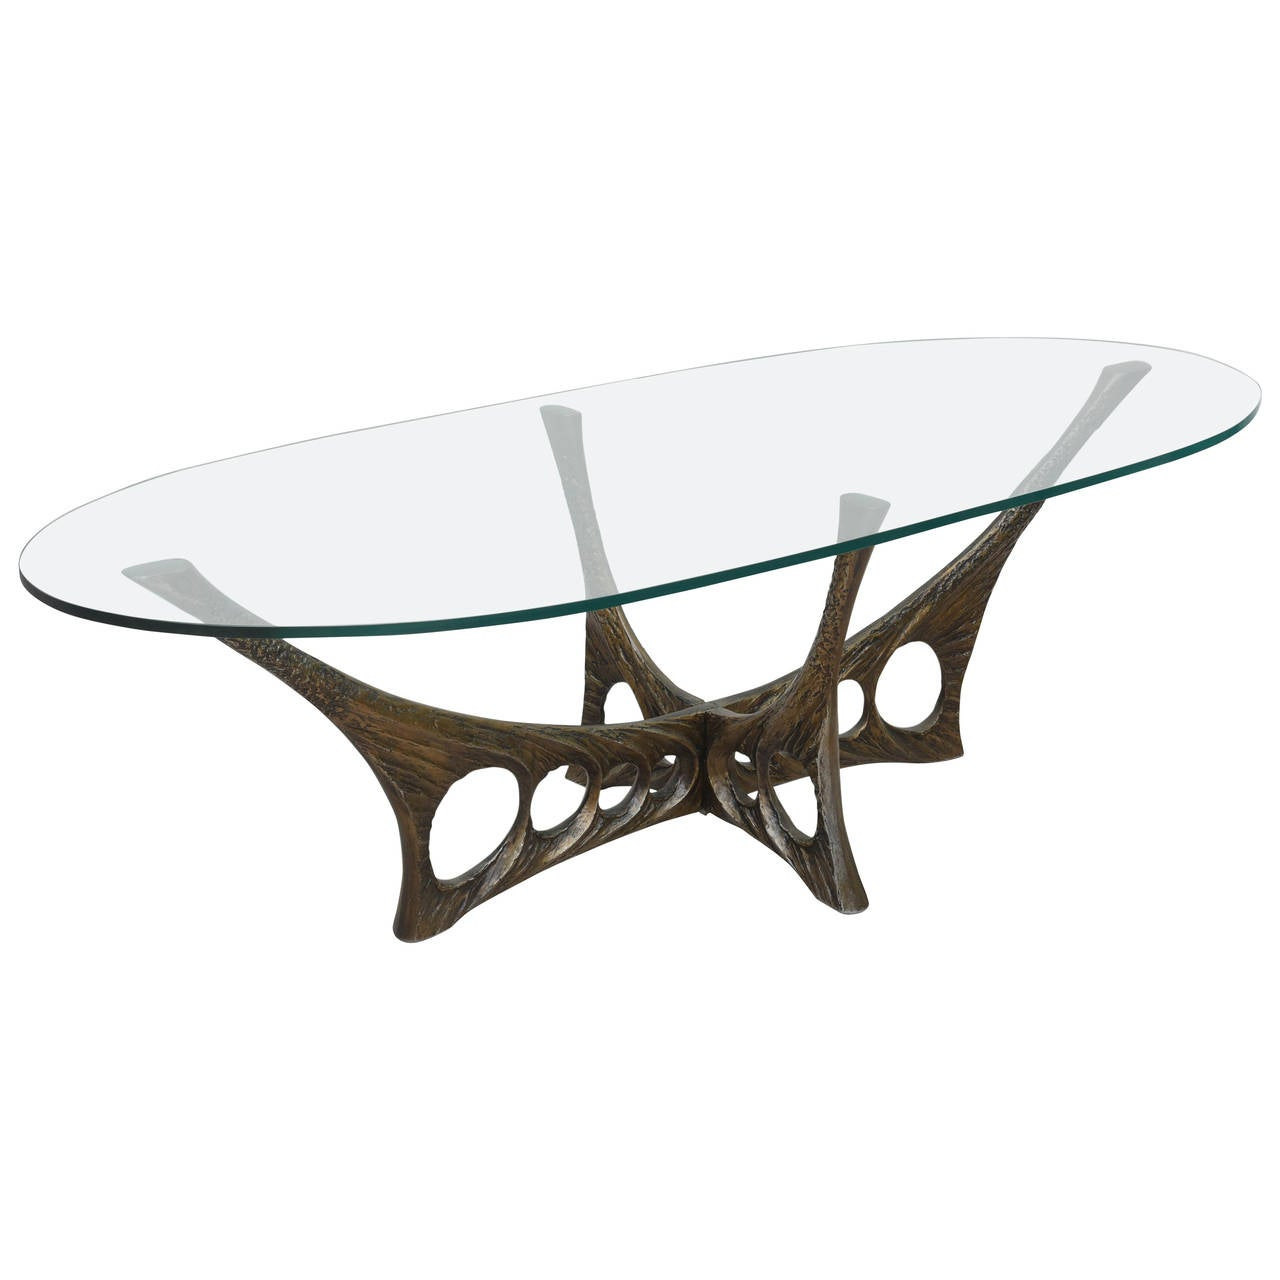 French Brutalist Coffee Table with Glass Top by Willy Ceyssens 1